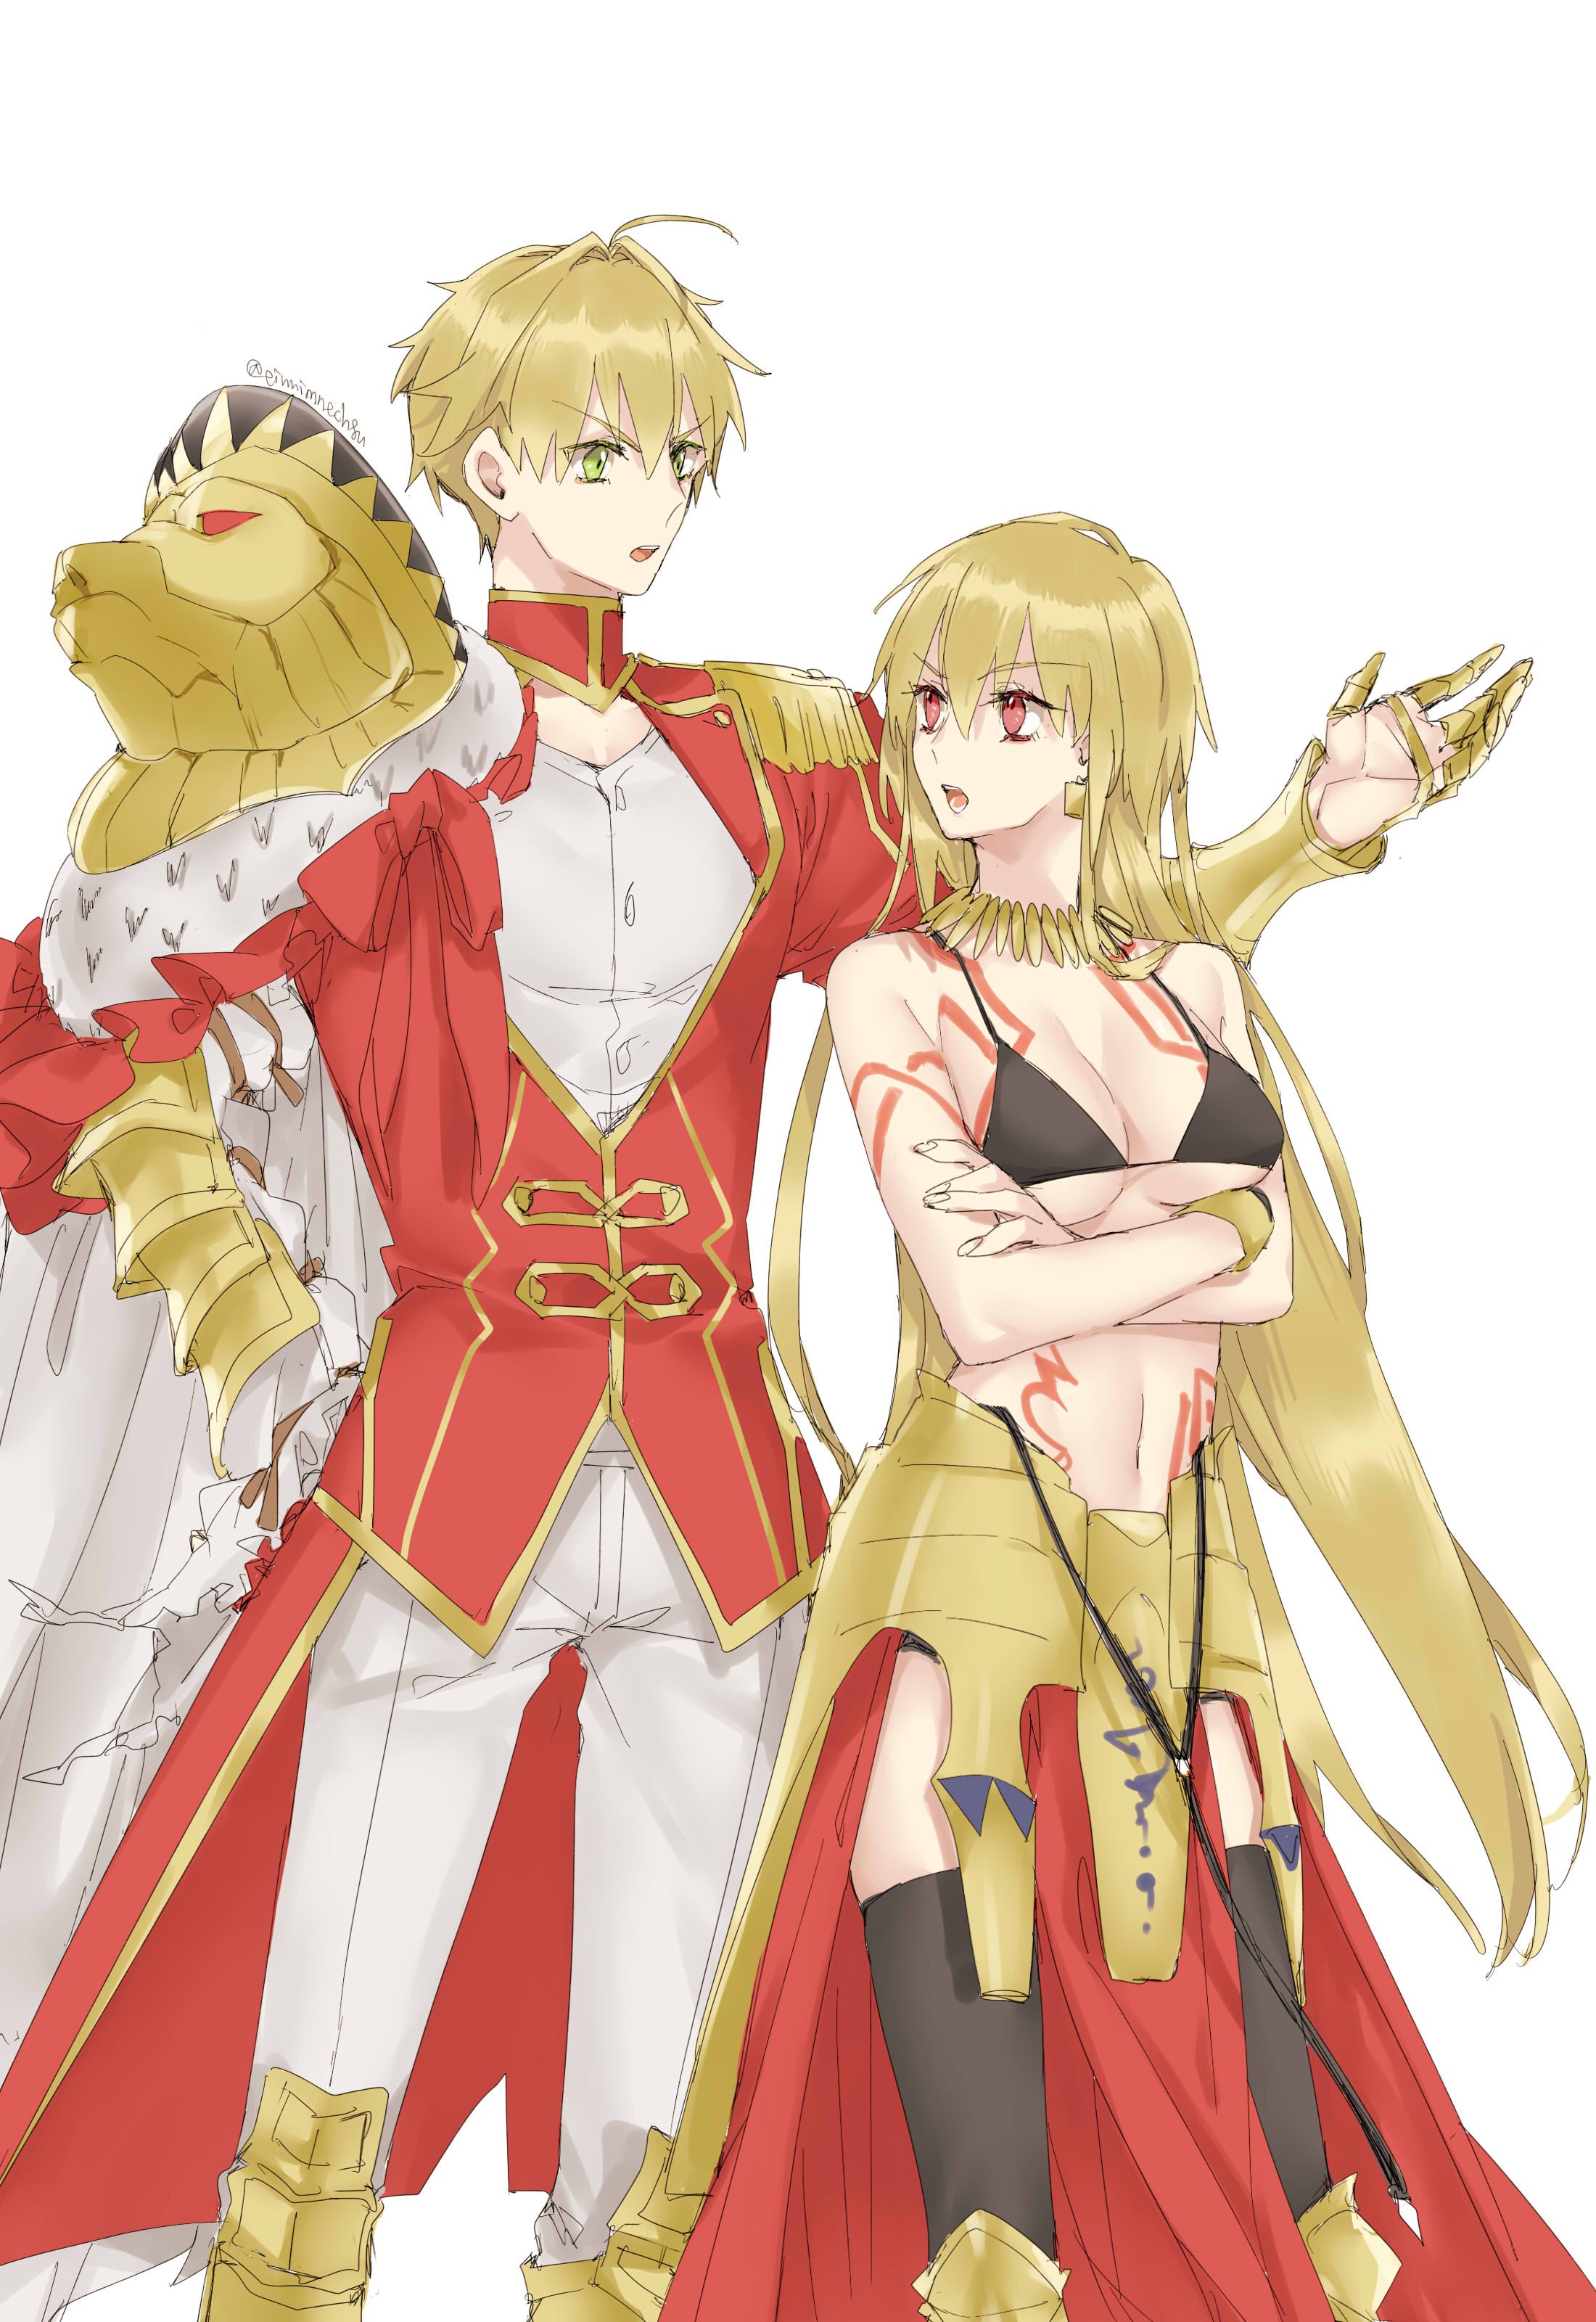 grand anime Fate online order